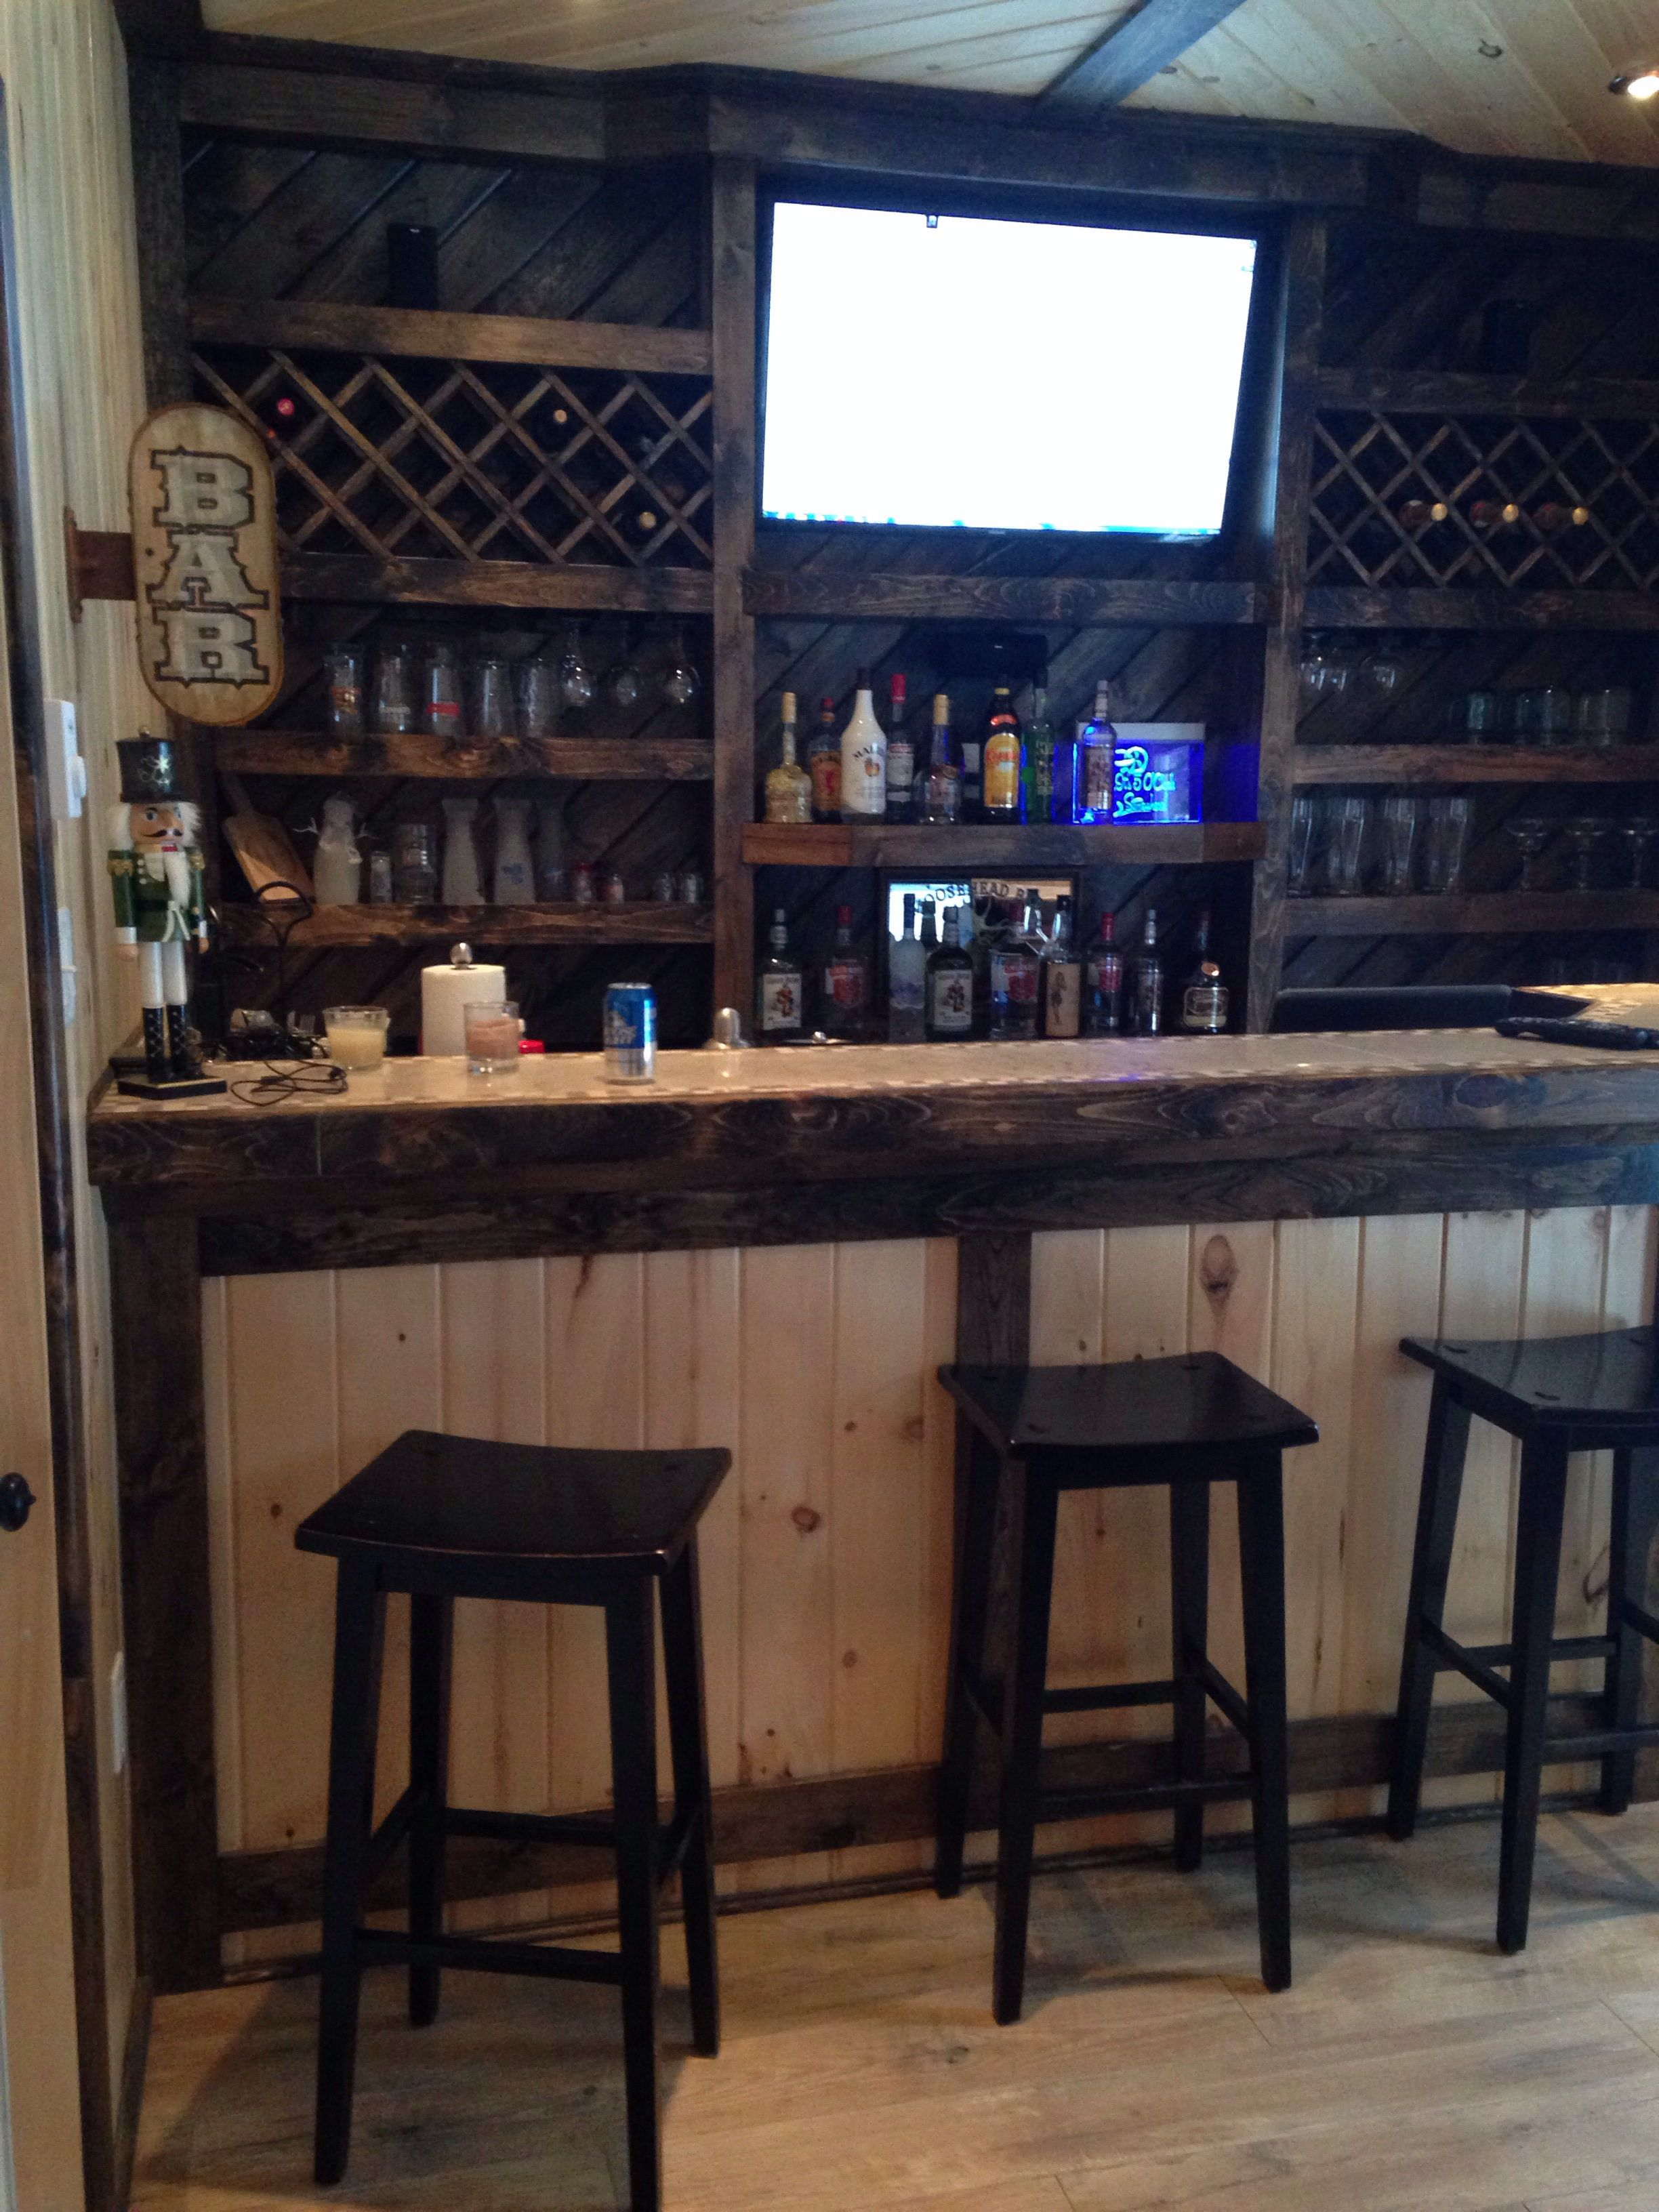 Garage Bar Idea For The Hubby 39 S Man Cave Like This But